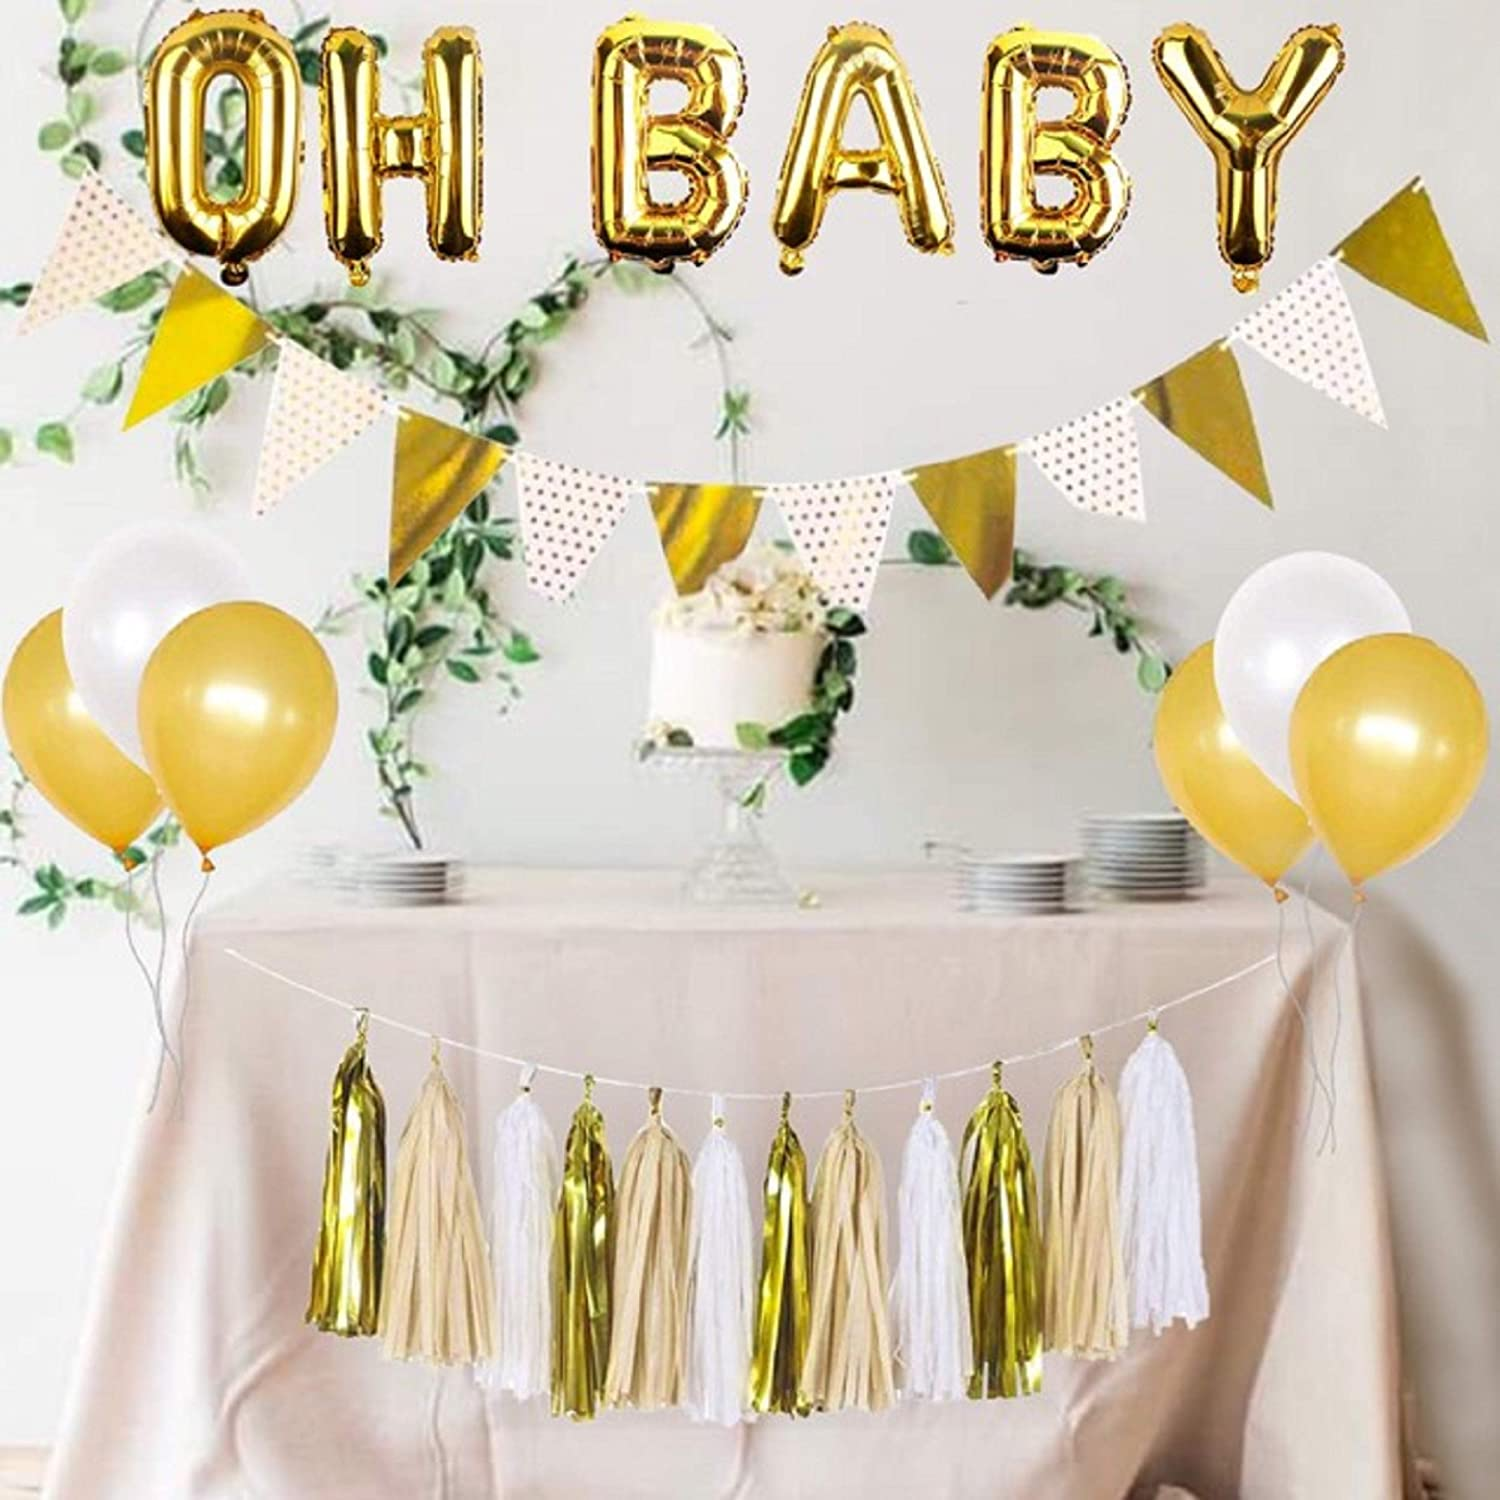 Amazon Com Baby Shower Decorations Gender Neutral Oh Baby Balloon Gold And White Balloons White And Gold Banner Gold And White Tassel Set Gold And White Baby Shower Rustic Baby Shower Decorations Toys